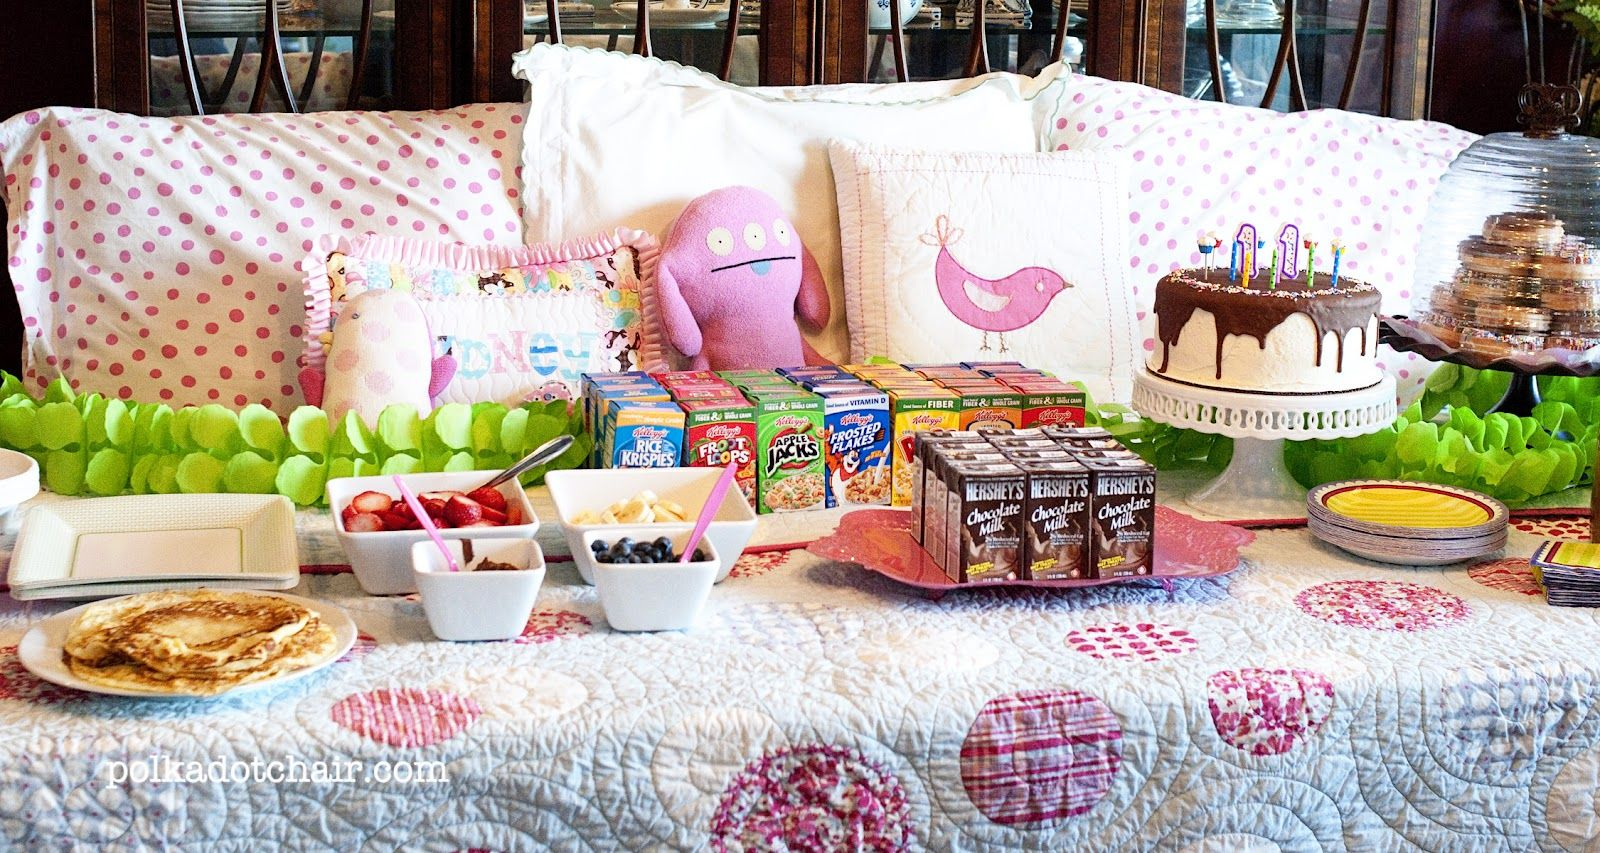 """The Polkadot Chair: Simple """"un"""" Slumber Party {table set like a bed...adorable}"""